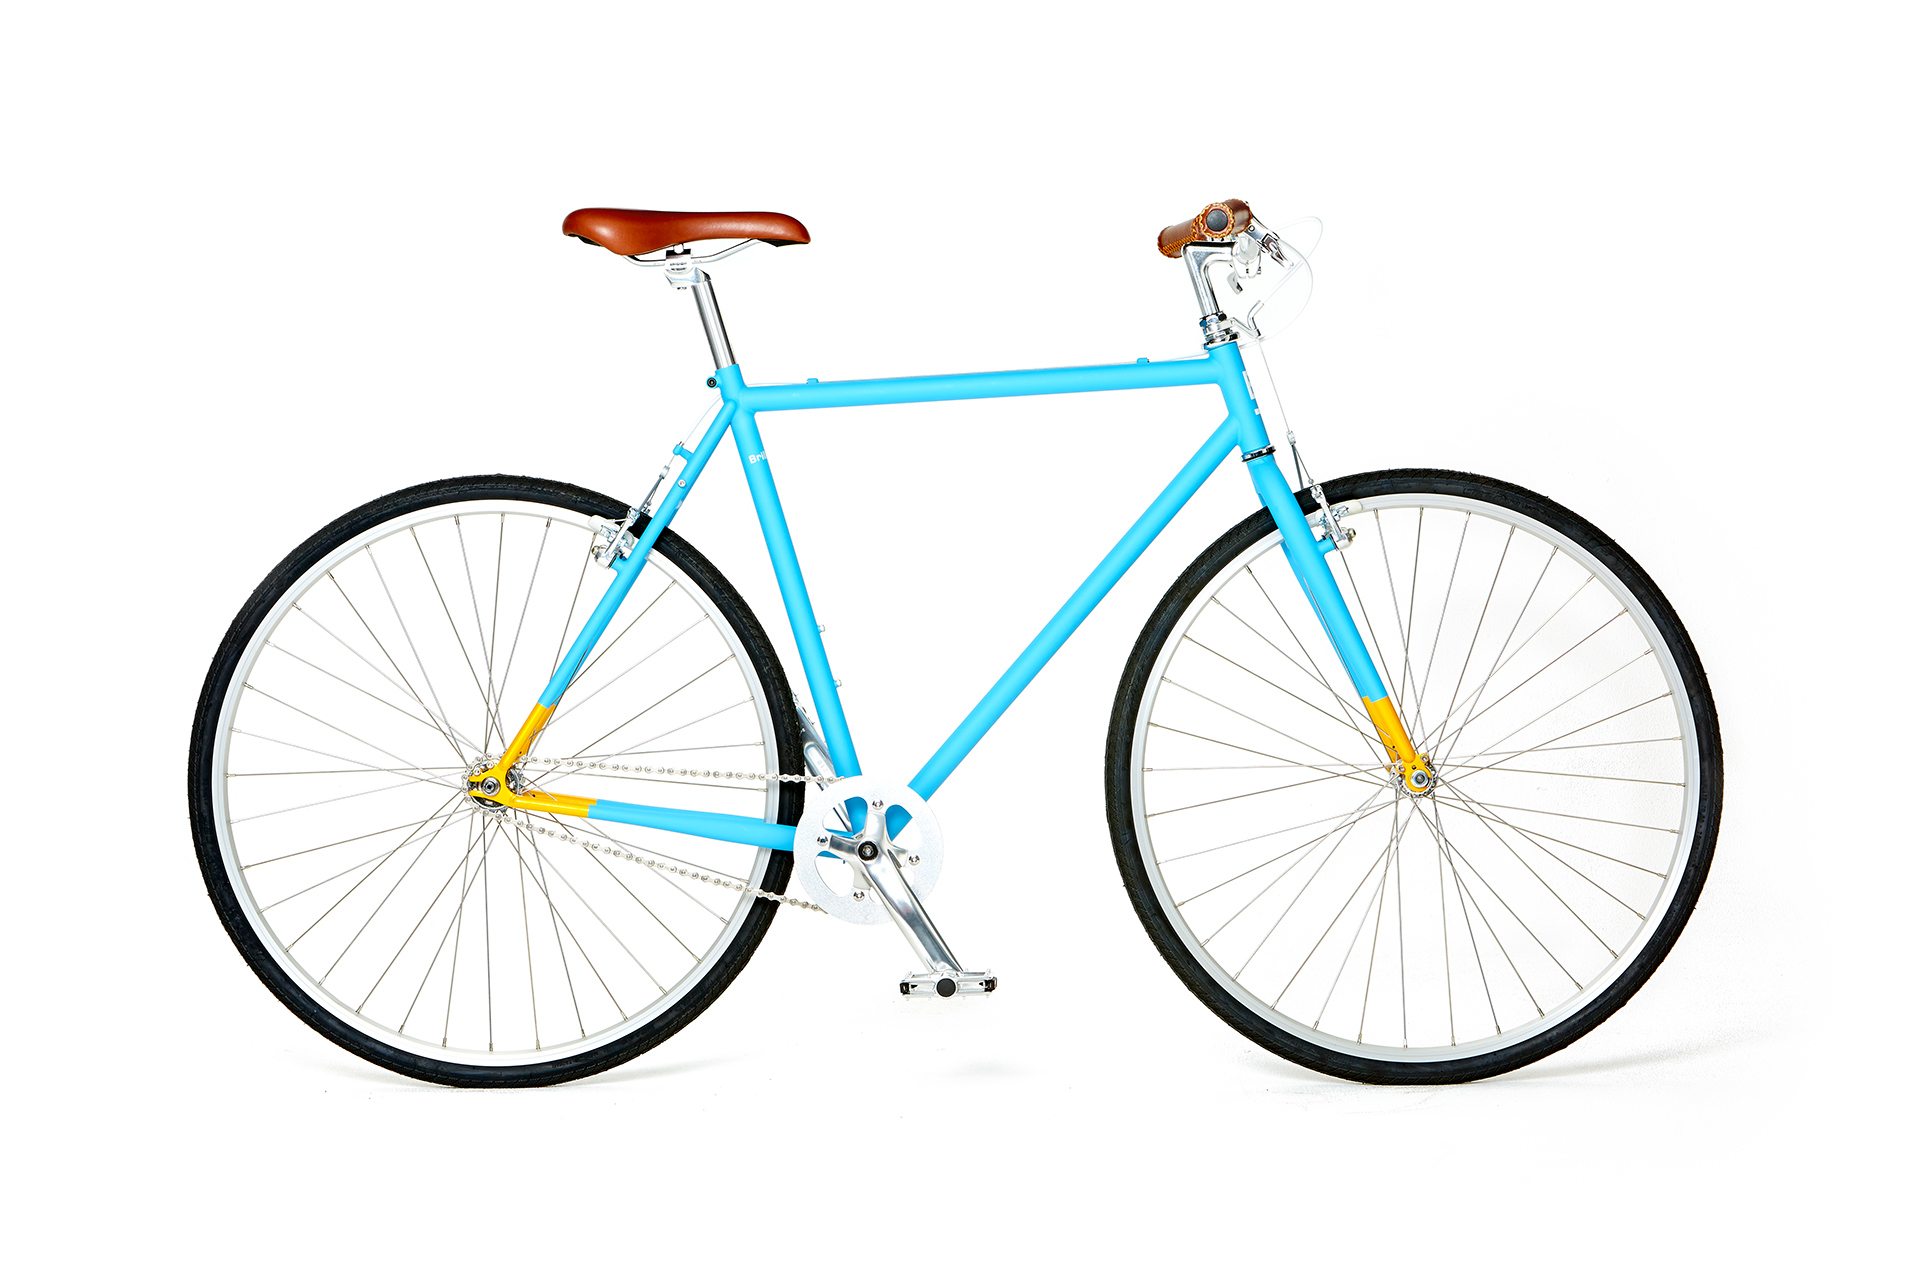 Brilliant Bicycles' Astor Bicycle in Laguna Blue